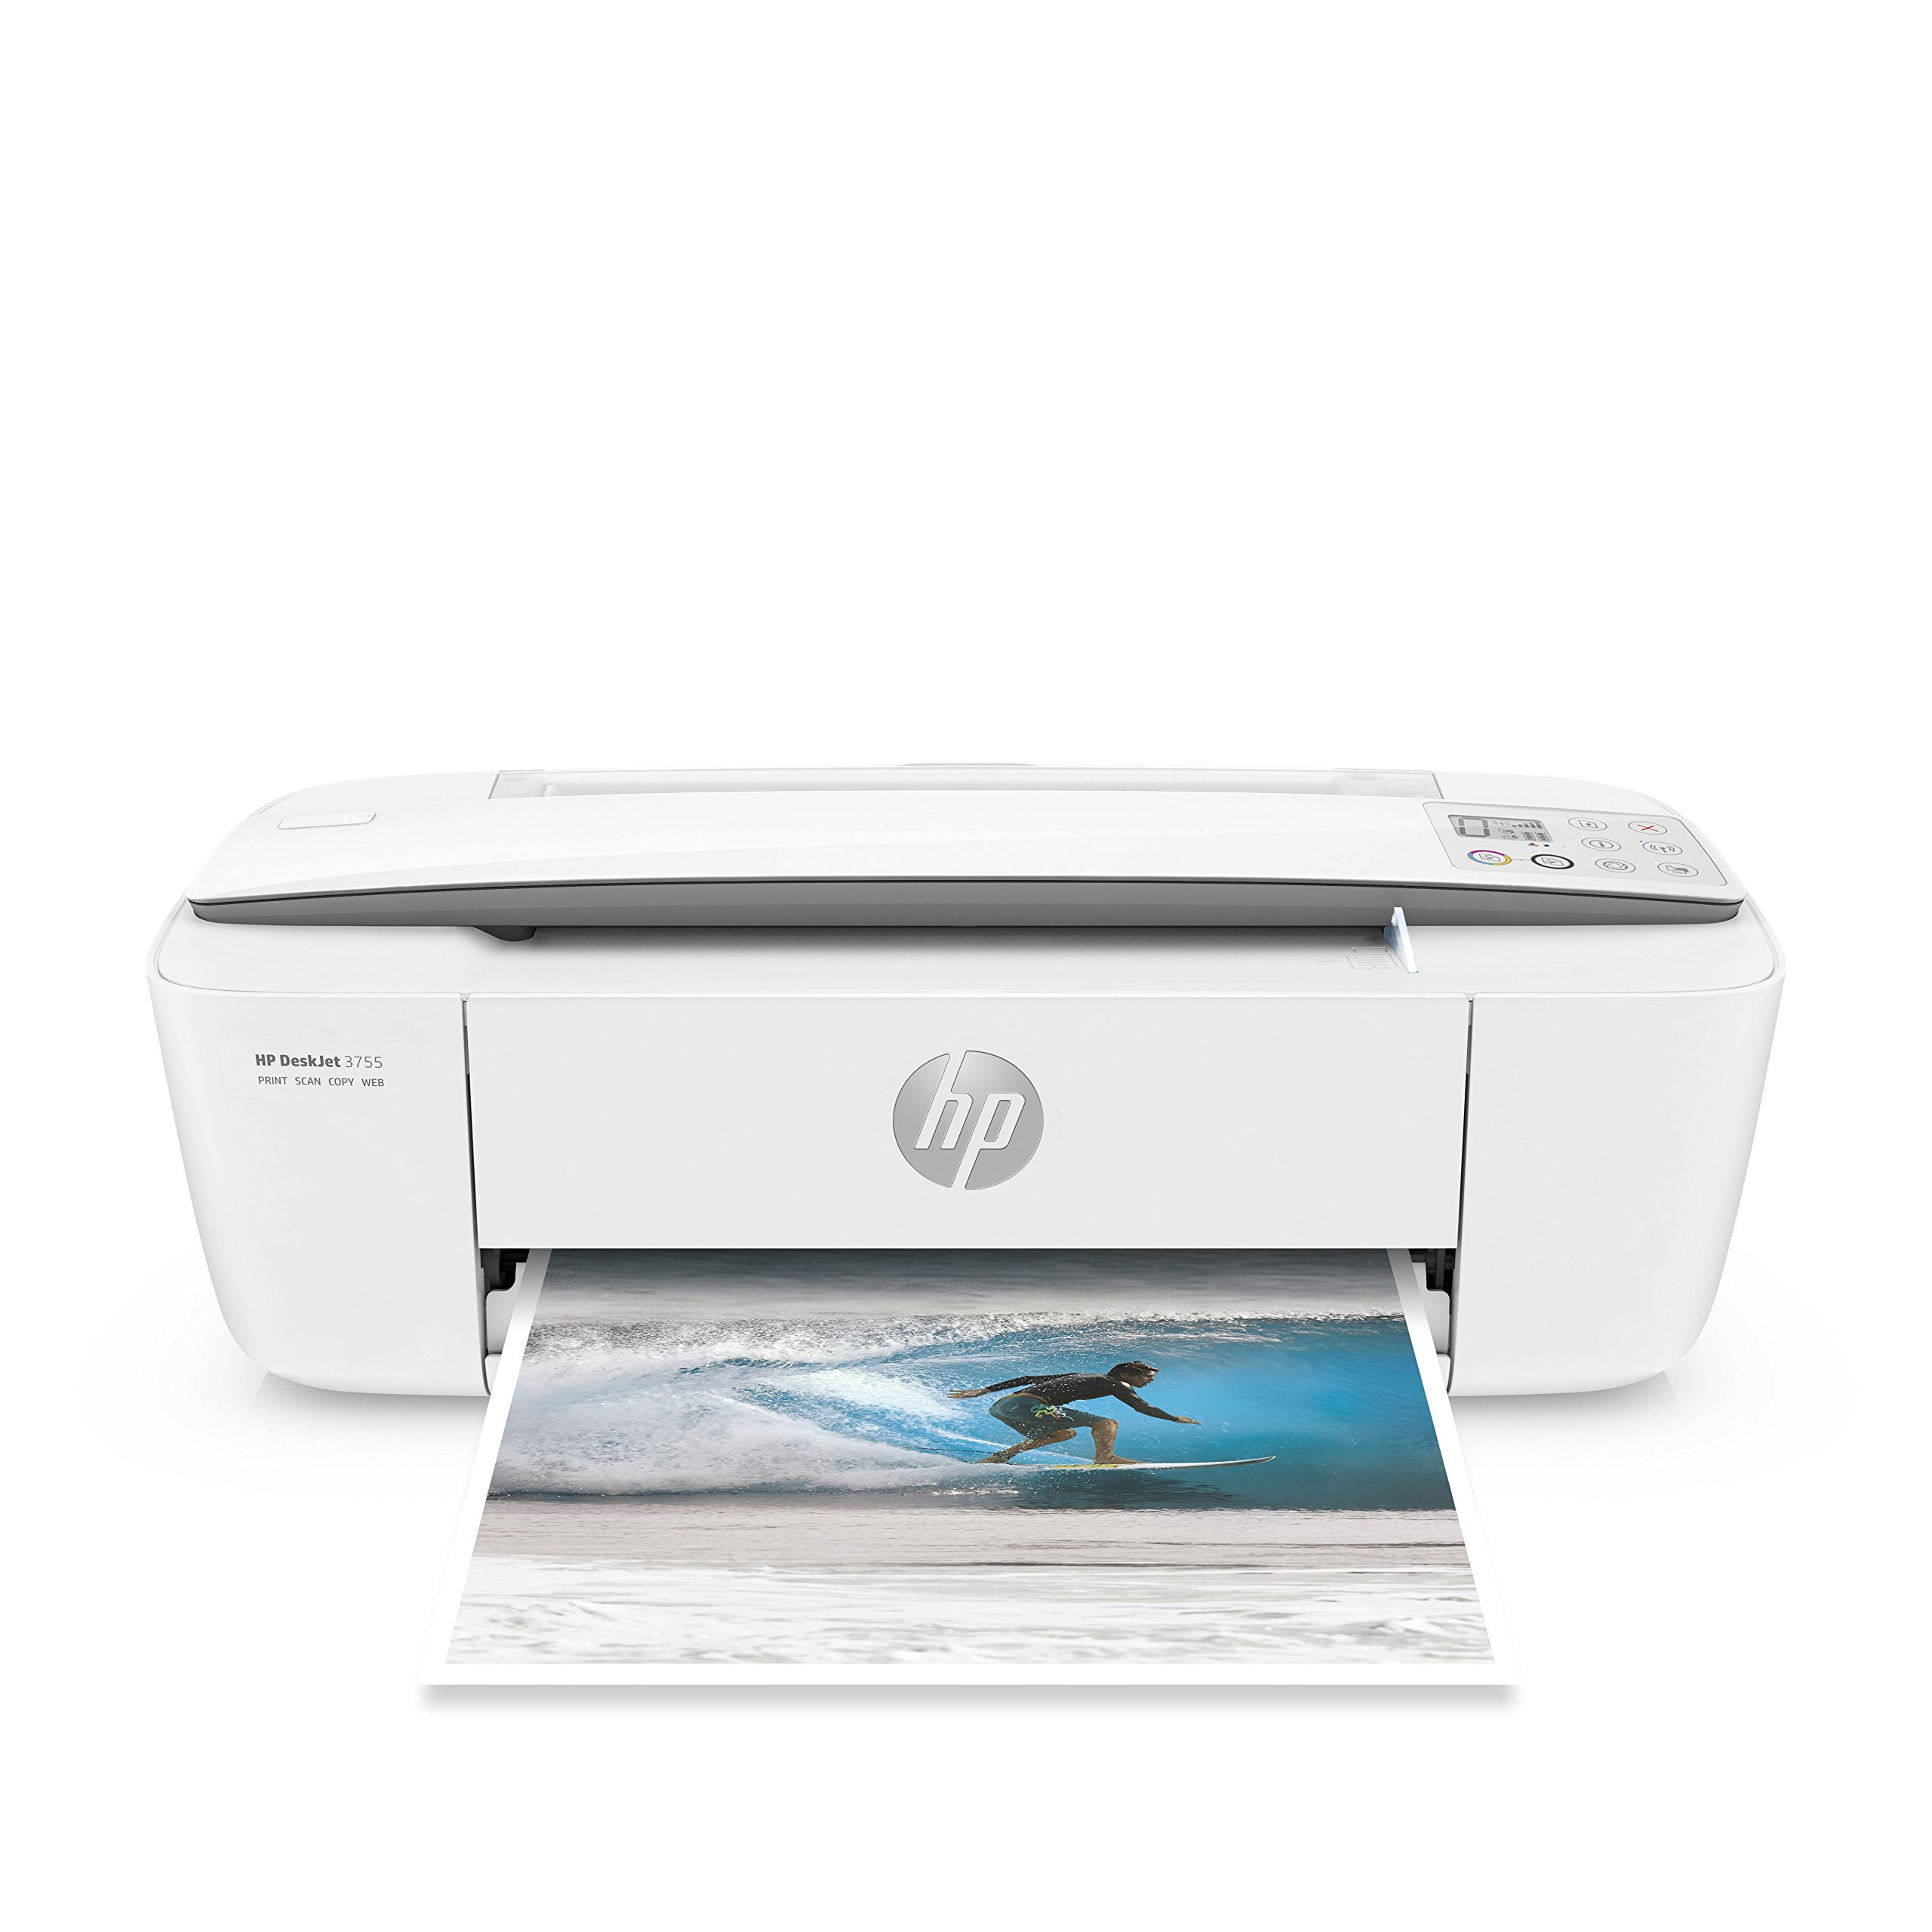 HP DeskJet 3755 Compact All-in-One Wireless Printer with Mobile Printing, HP Instant Ink & Amazon Dash Replenishment ready - Stone Accent (J9V91A)